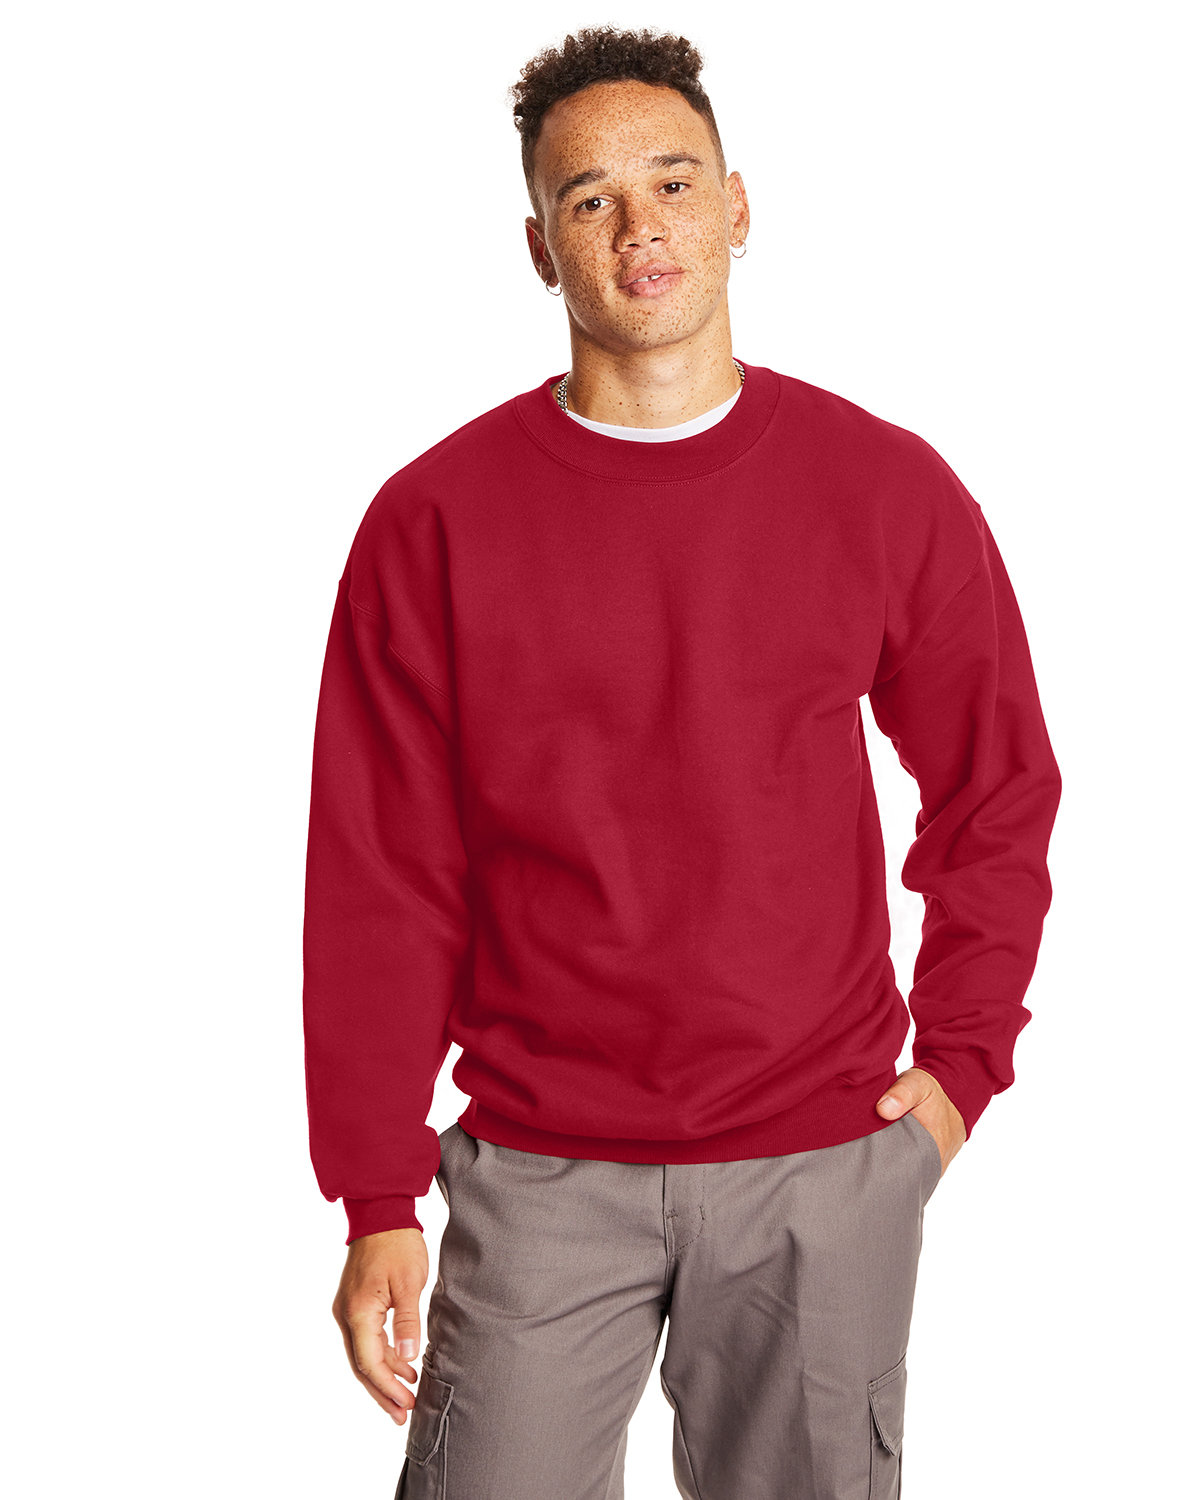 Hanes Adult Ultimate Cotton® 90/10 Fleece Crew DEEP RED